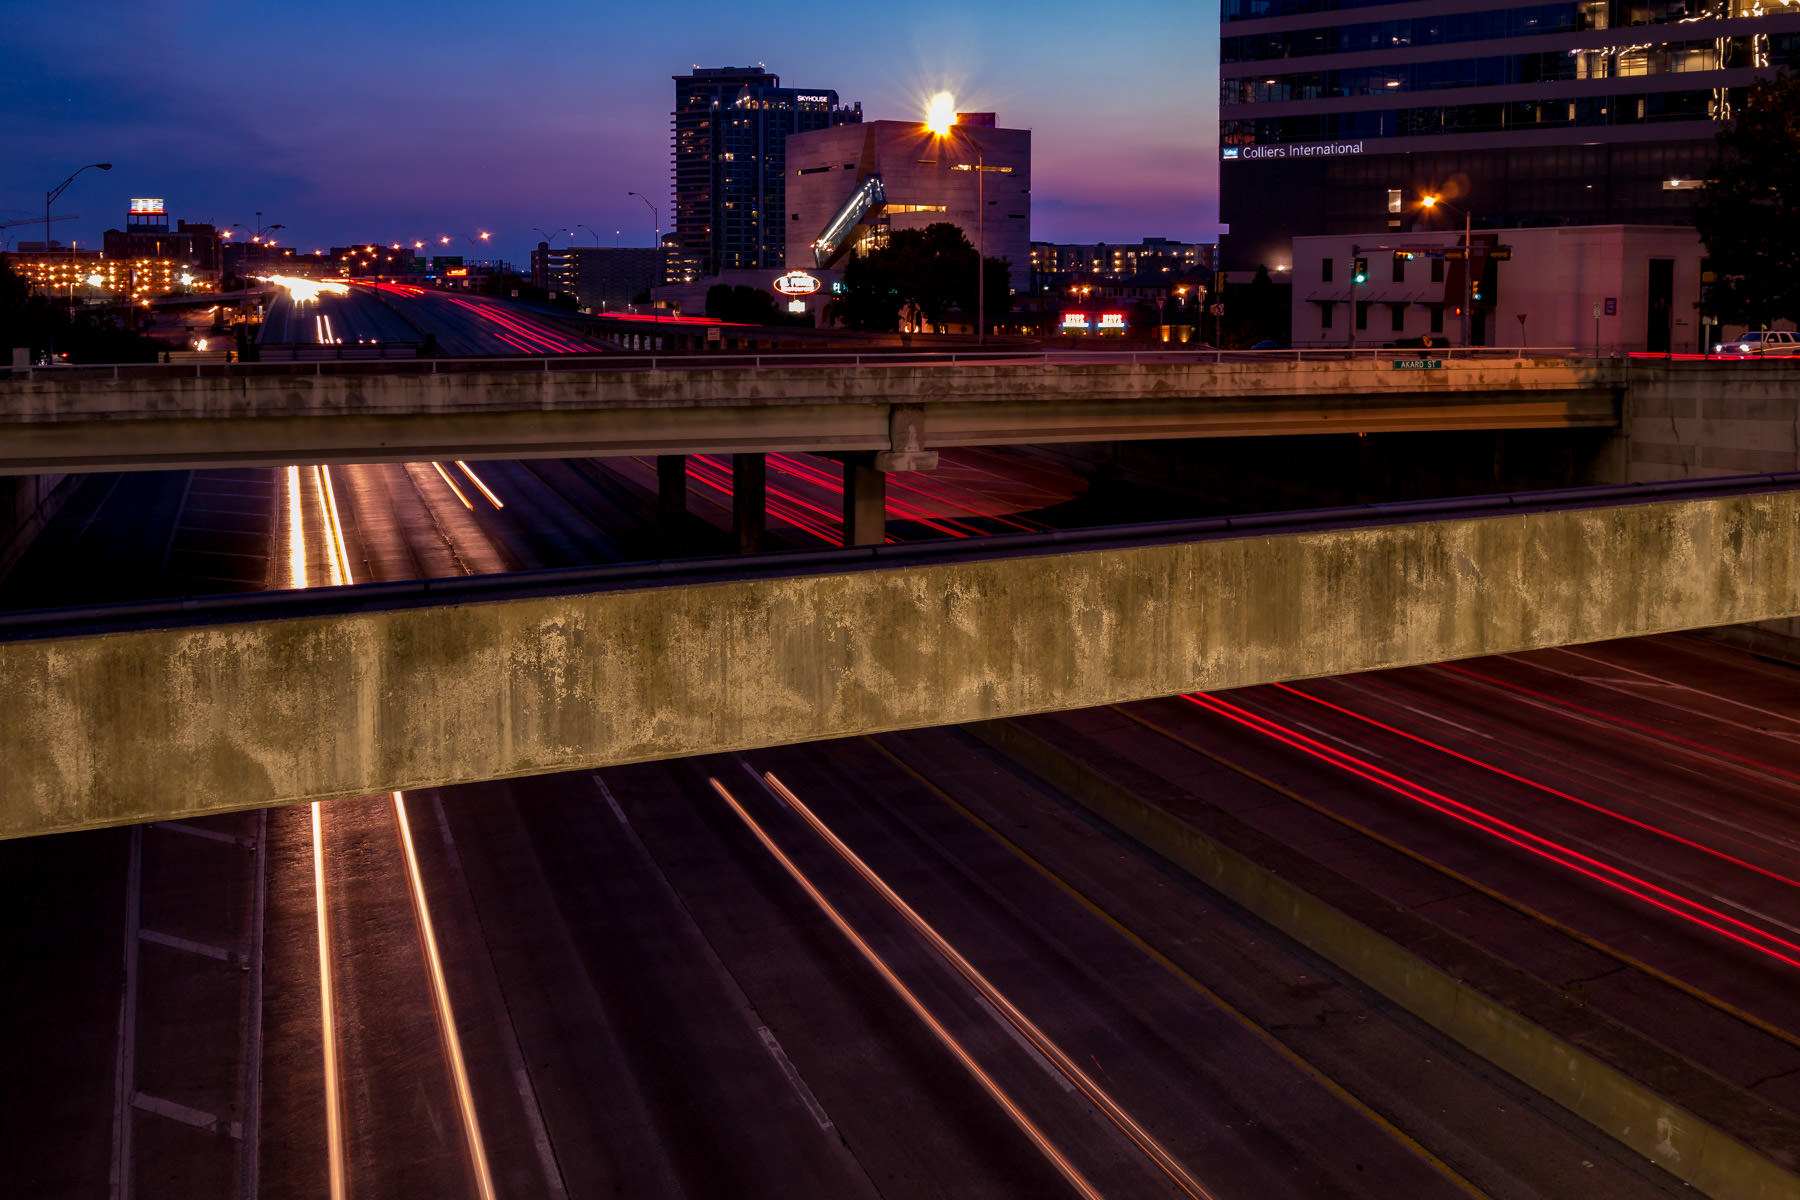 Steady traffic streams through the Downtown Dallas' Woodall Rodgers Freeway as night descends on North Texas.